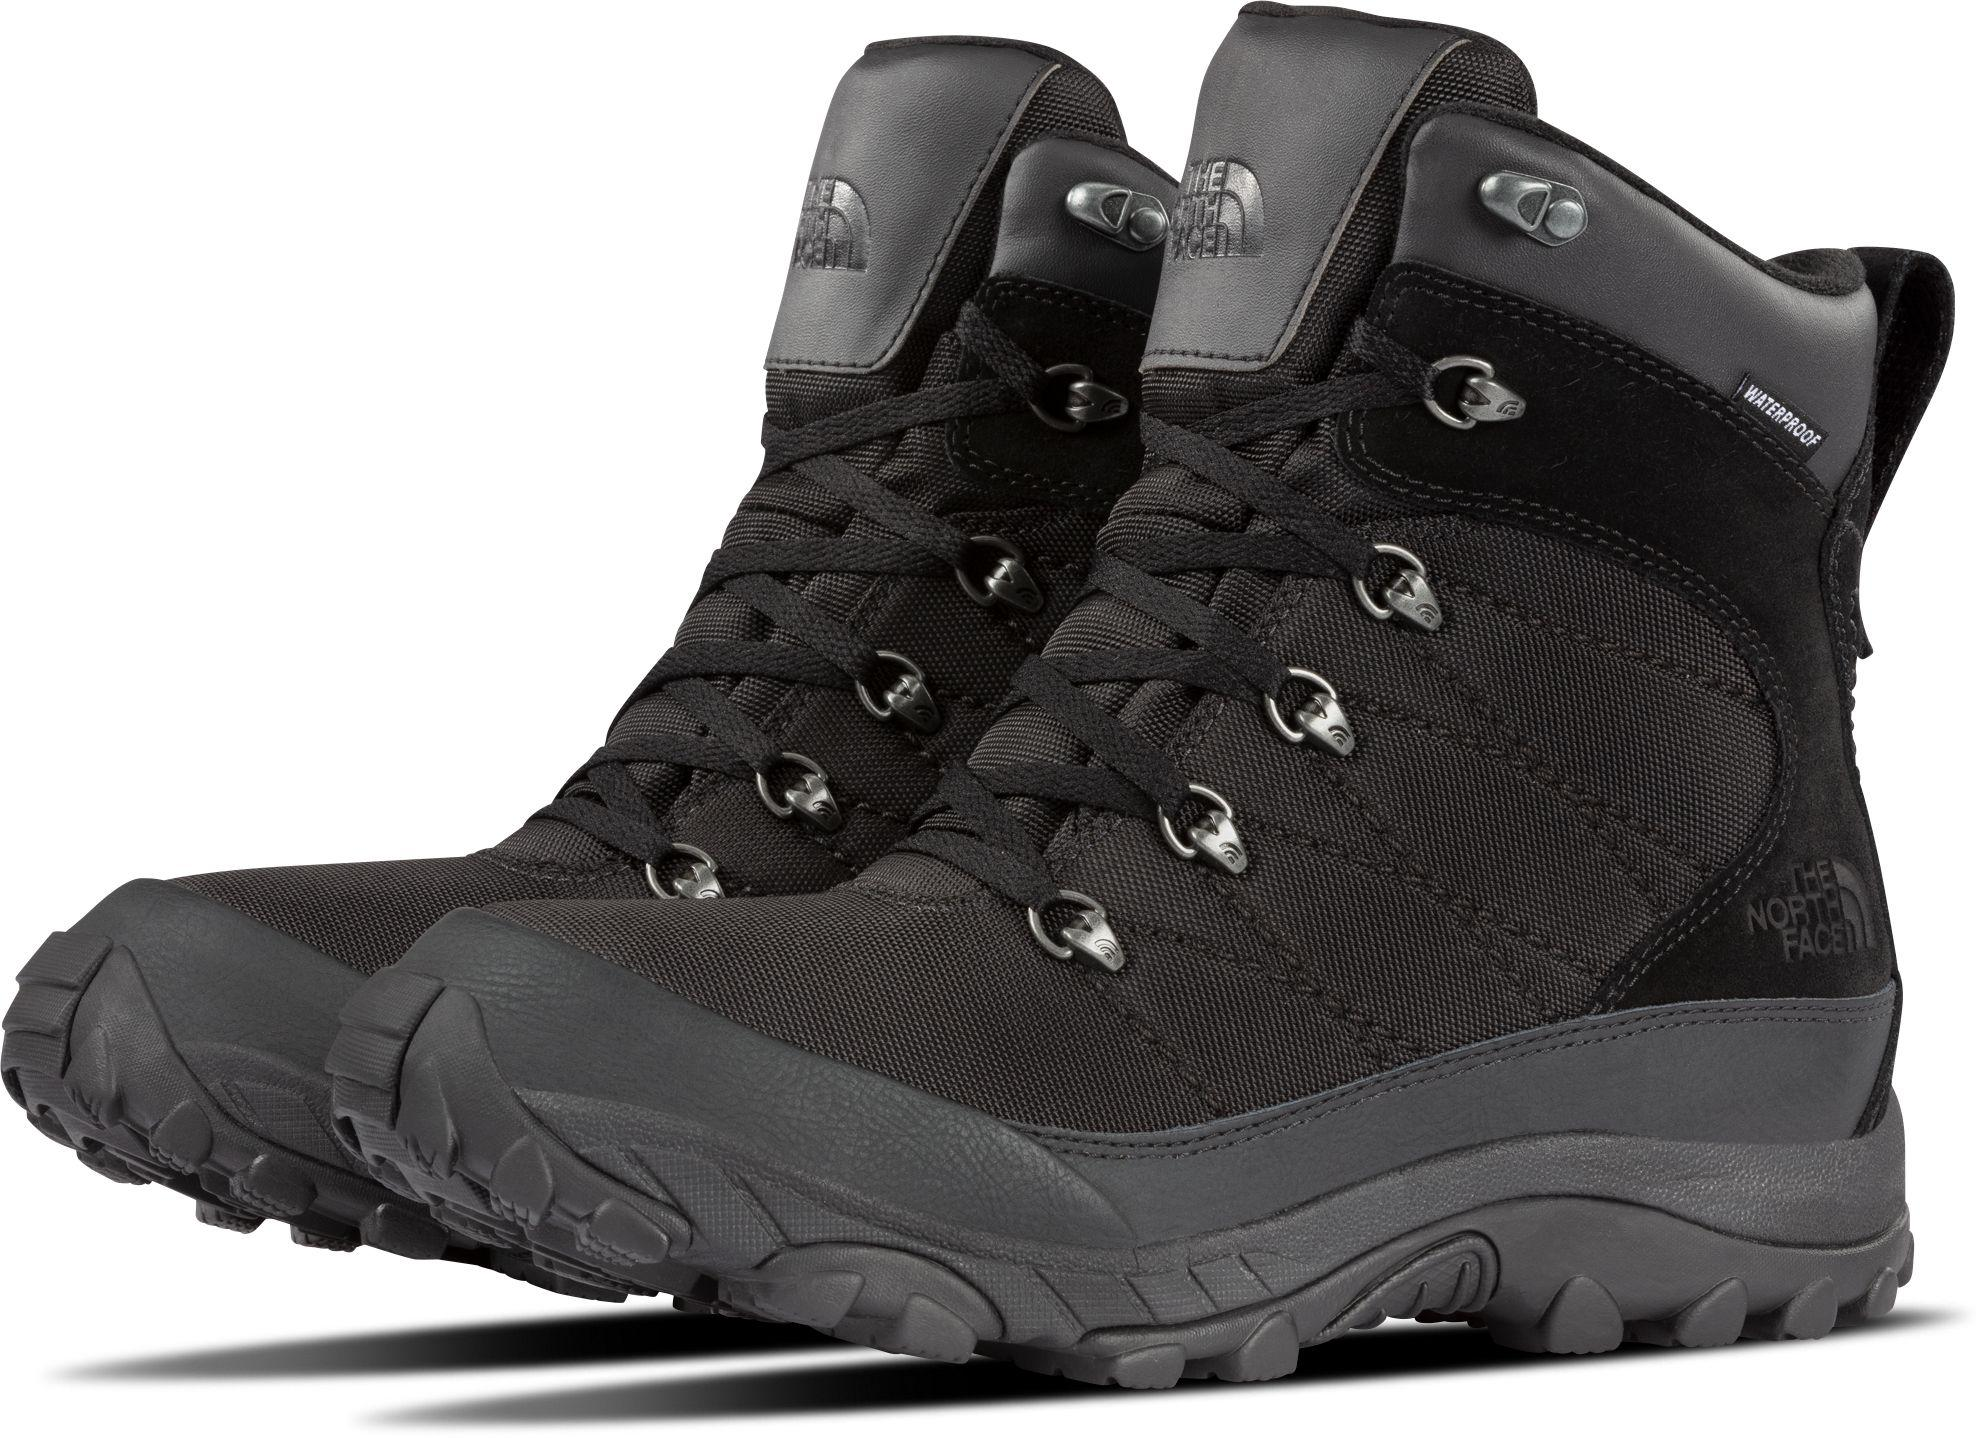 853947e97 The North Face Black Chilkat Nylon Waterproof Winter Boots for men